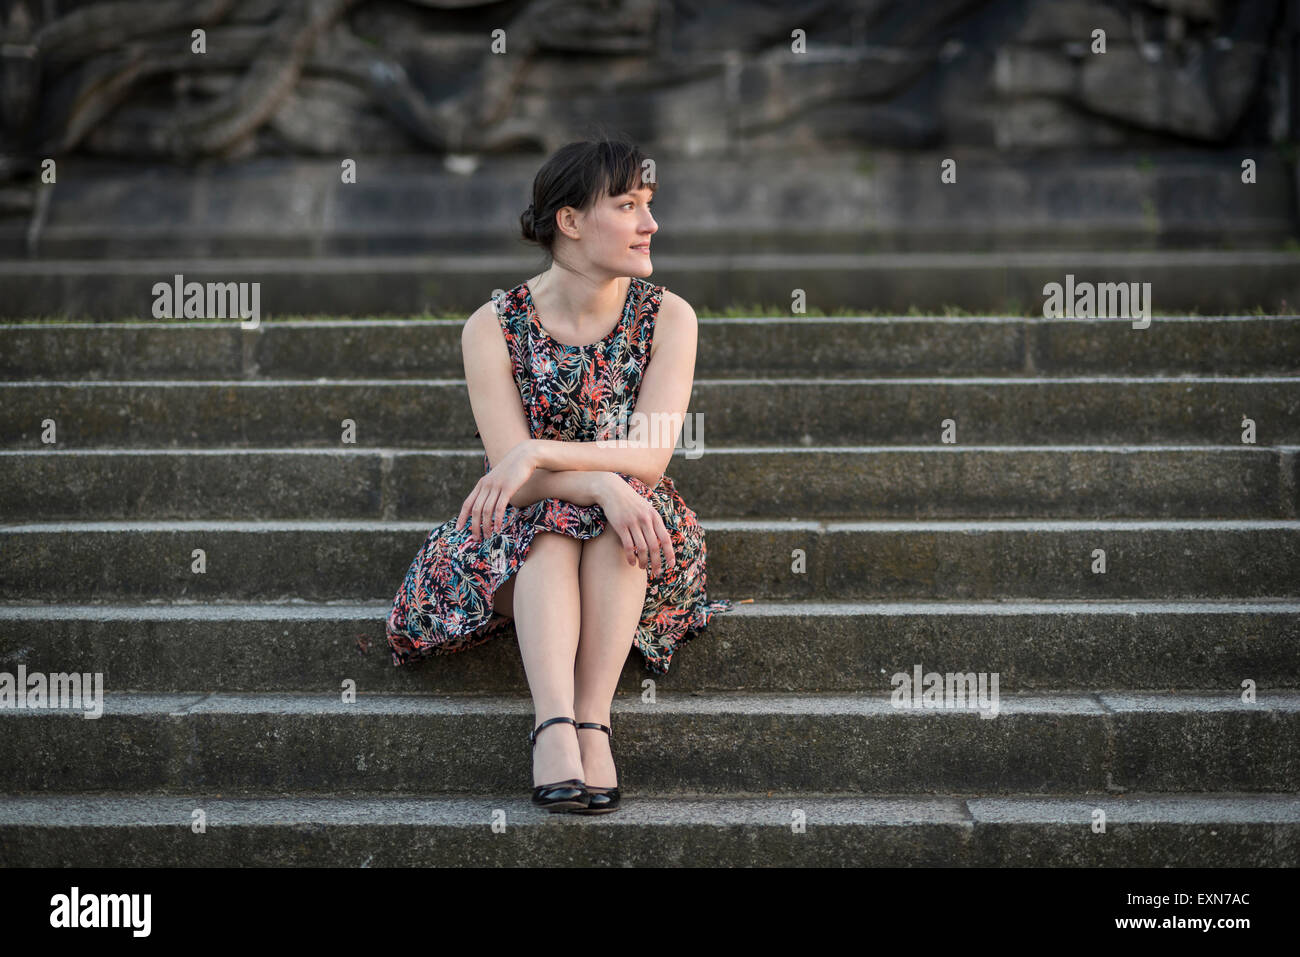 Germany, Koblenz, Deutsches Eck, young woman sitting on stairs - Stock Image